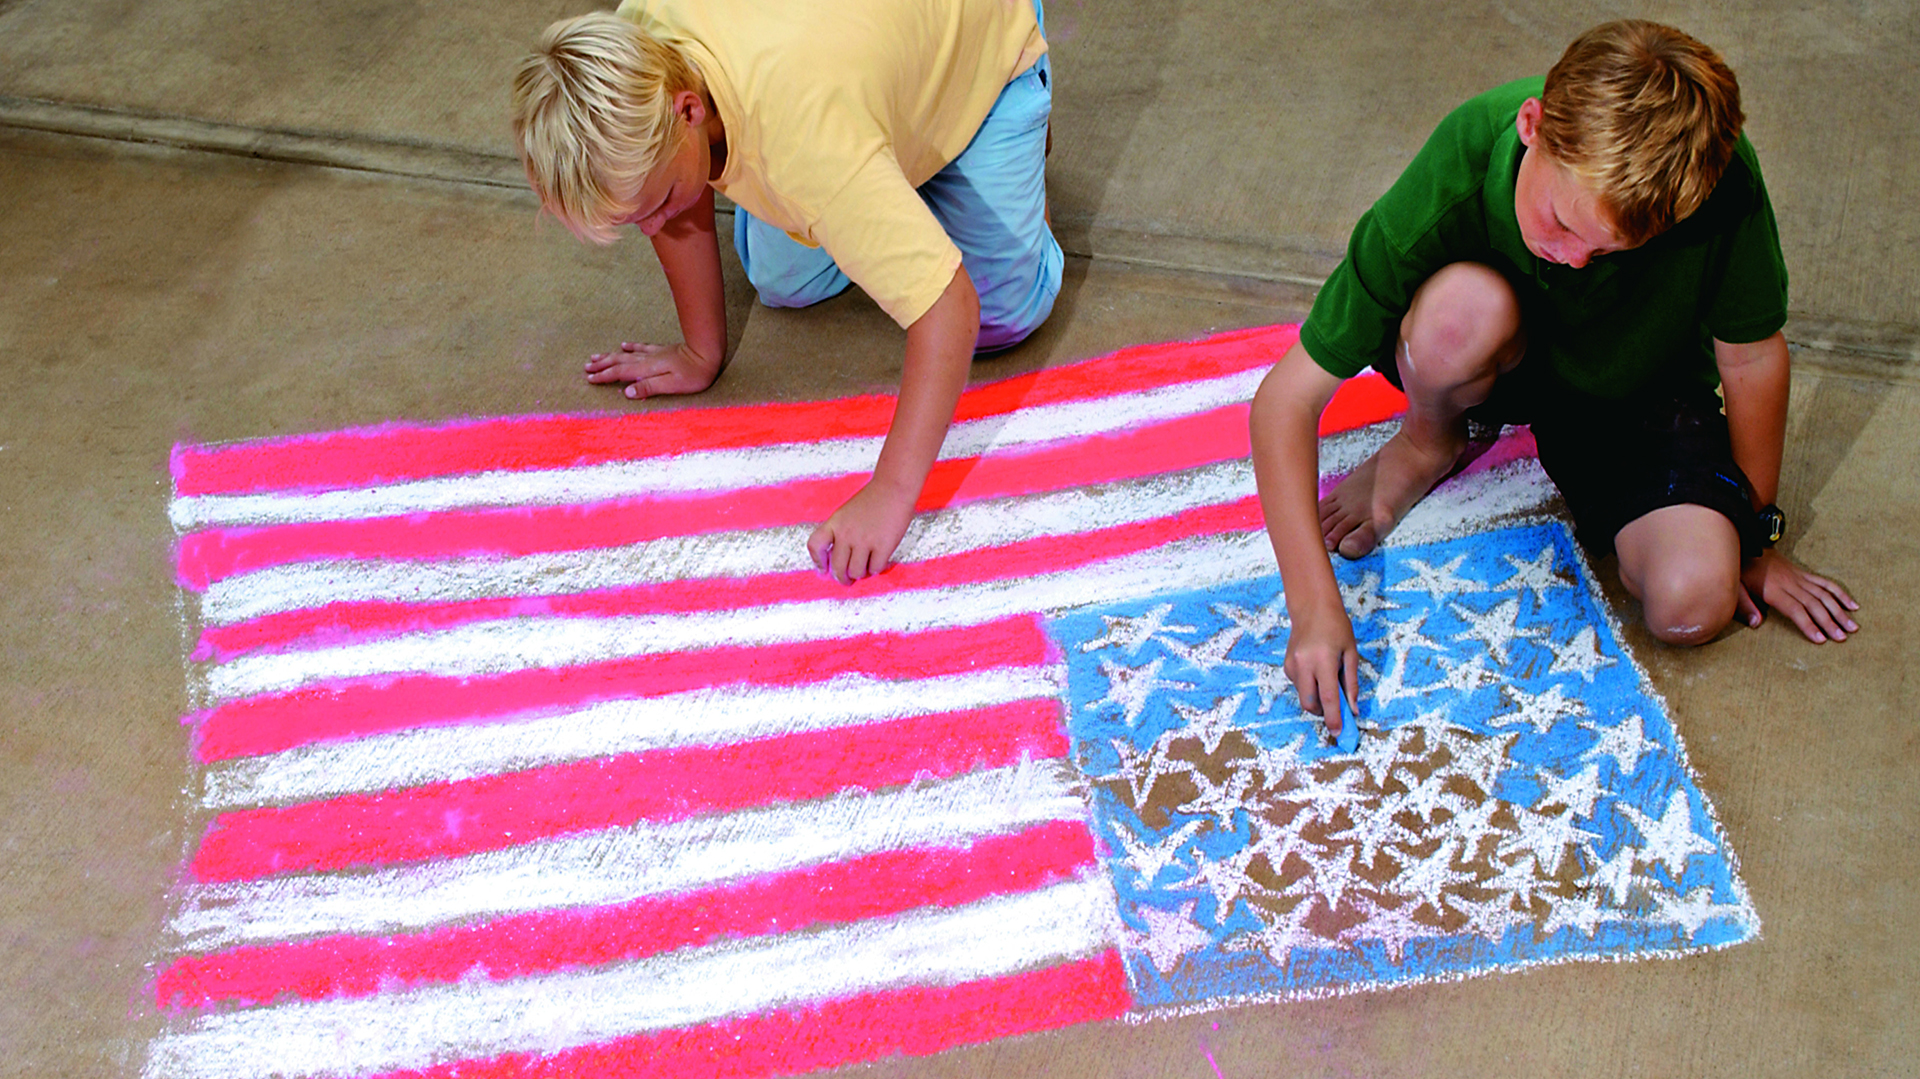 Boys drawing American flag with chalk | Sheknows.com